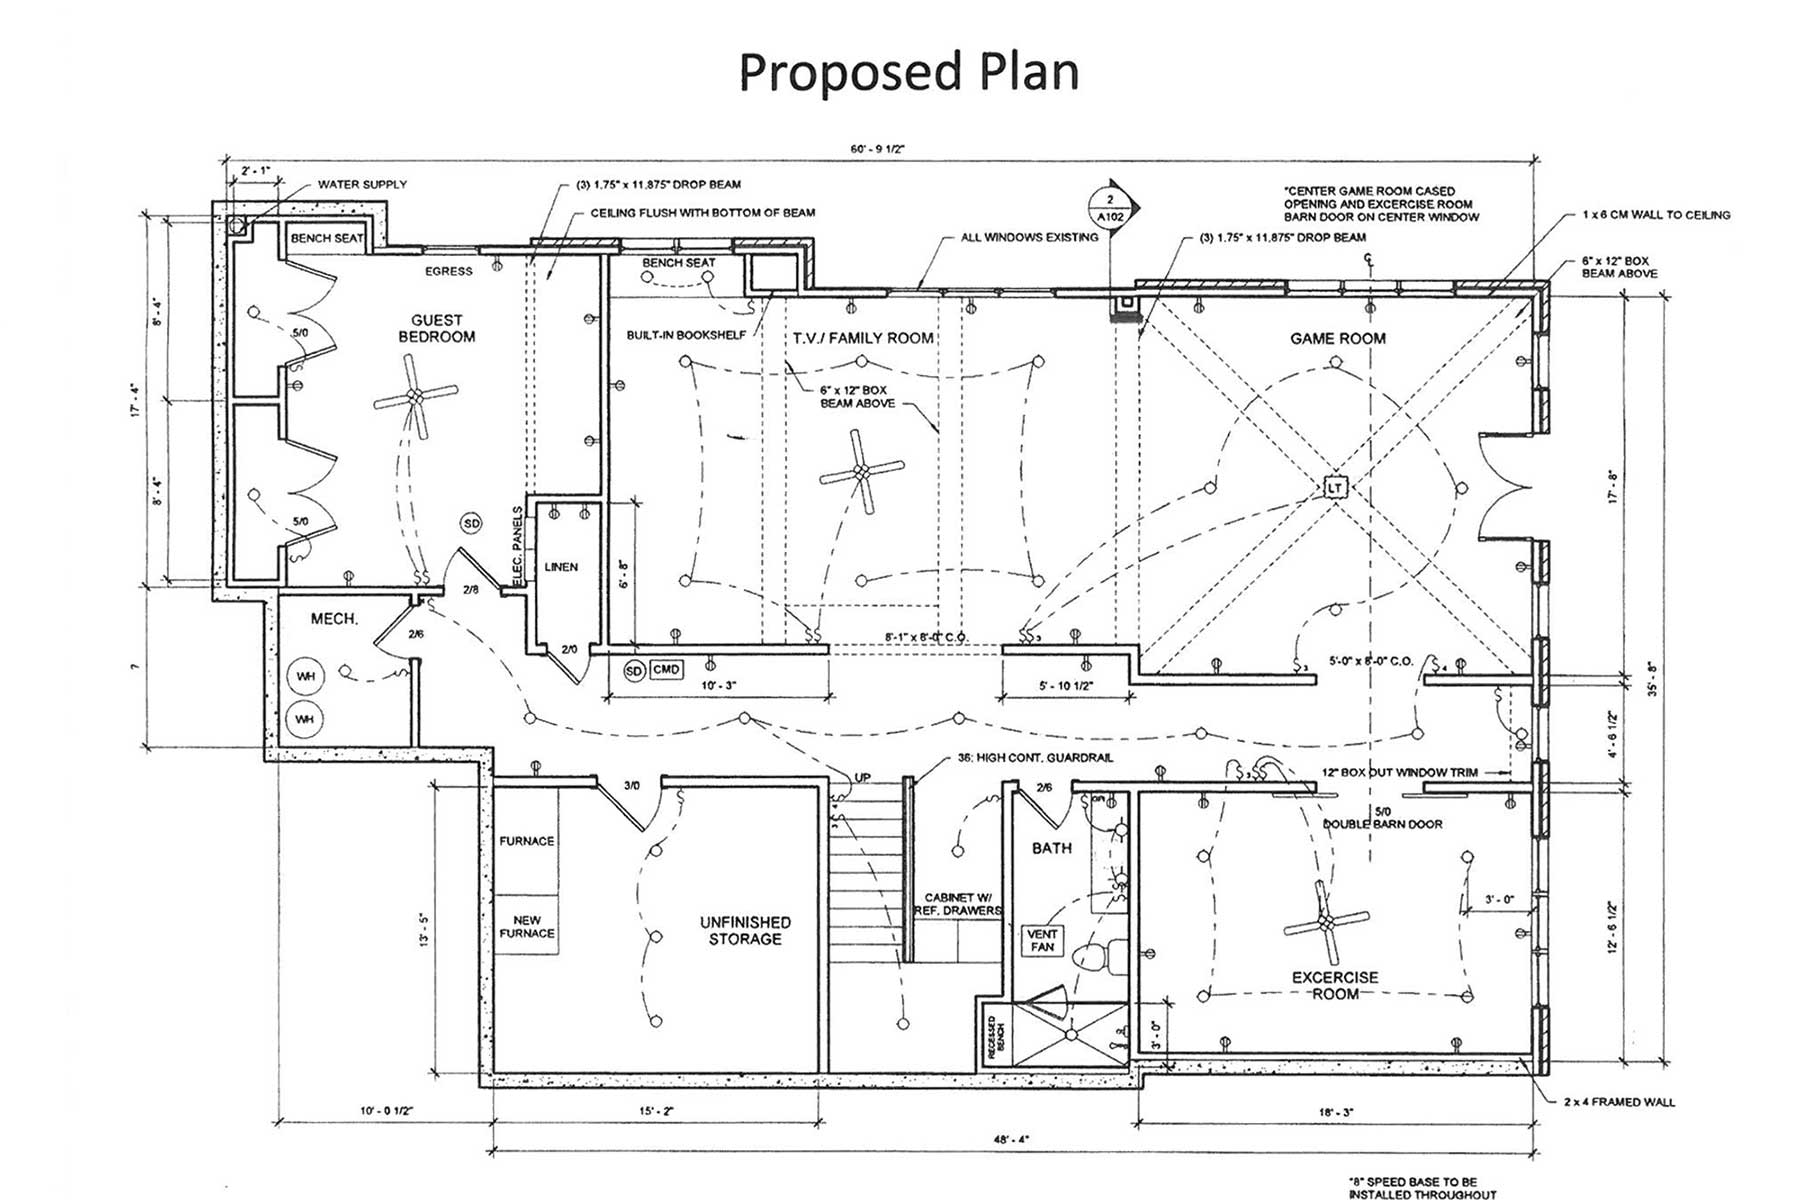 Proposed Plan for Remodel